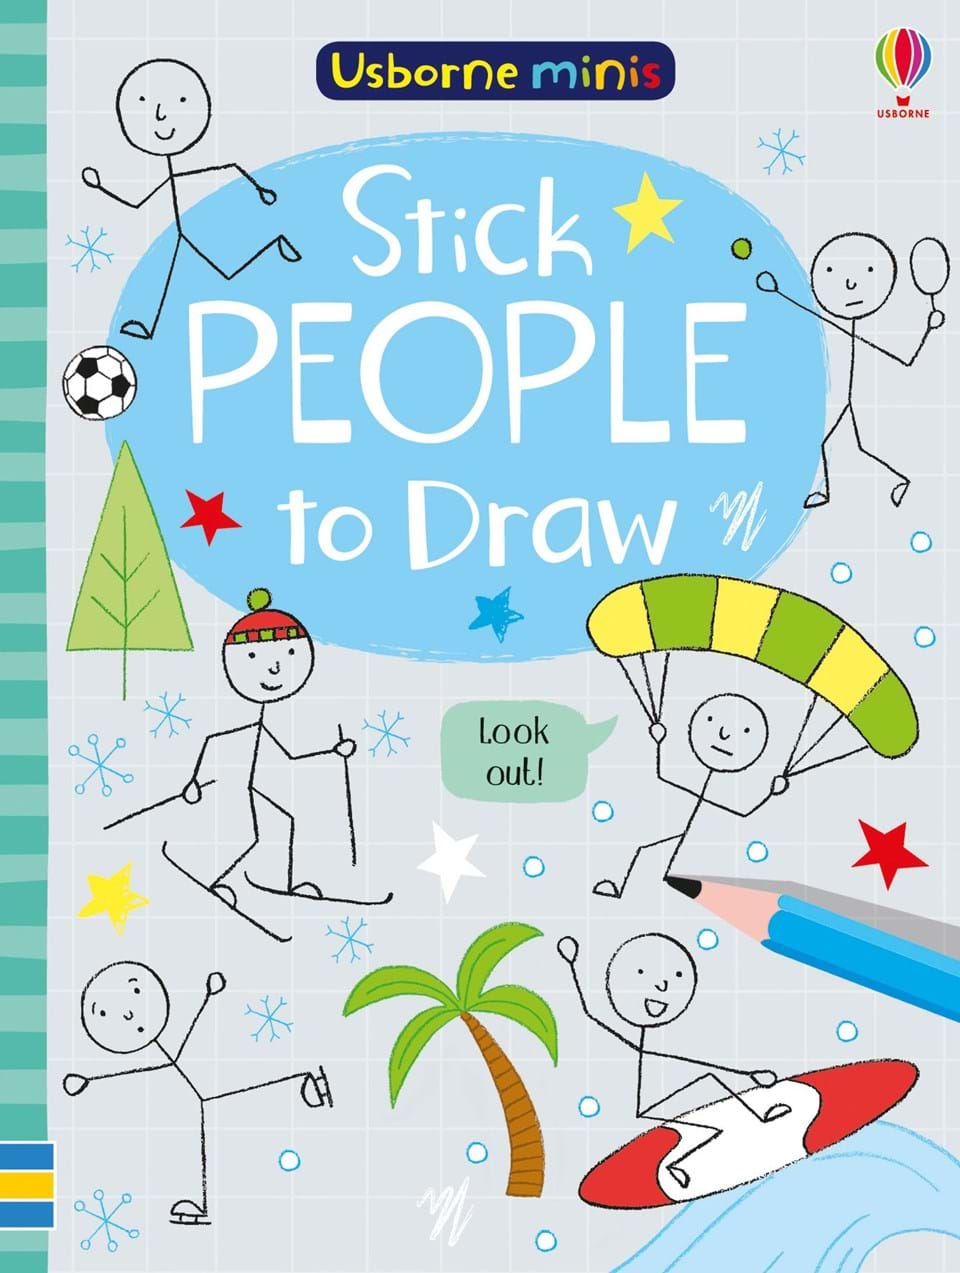 Stick people to draw new chinese stick drawing books by feile bird studios happy stick figure painted 10 000 cases